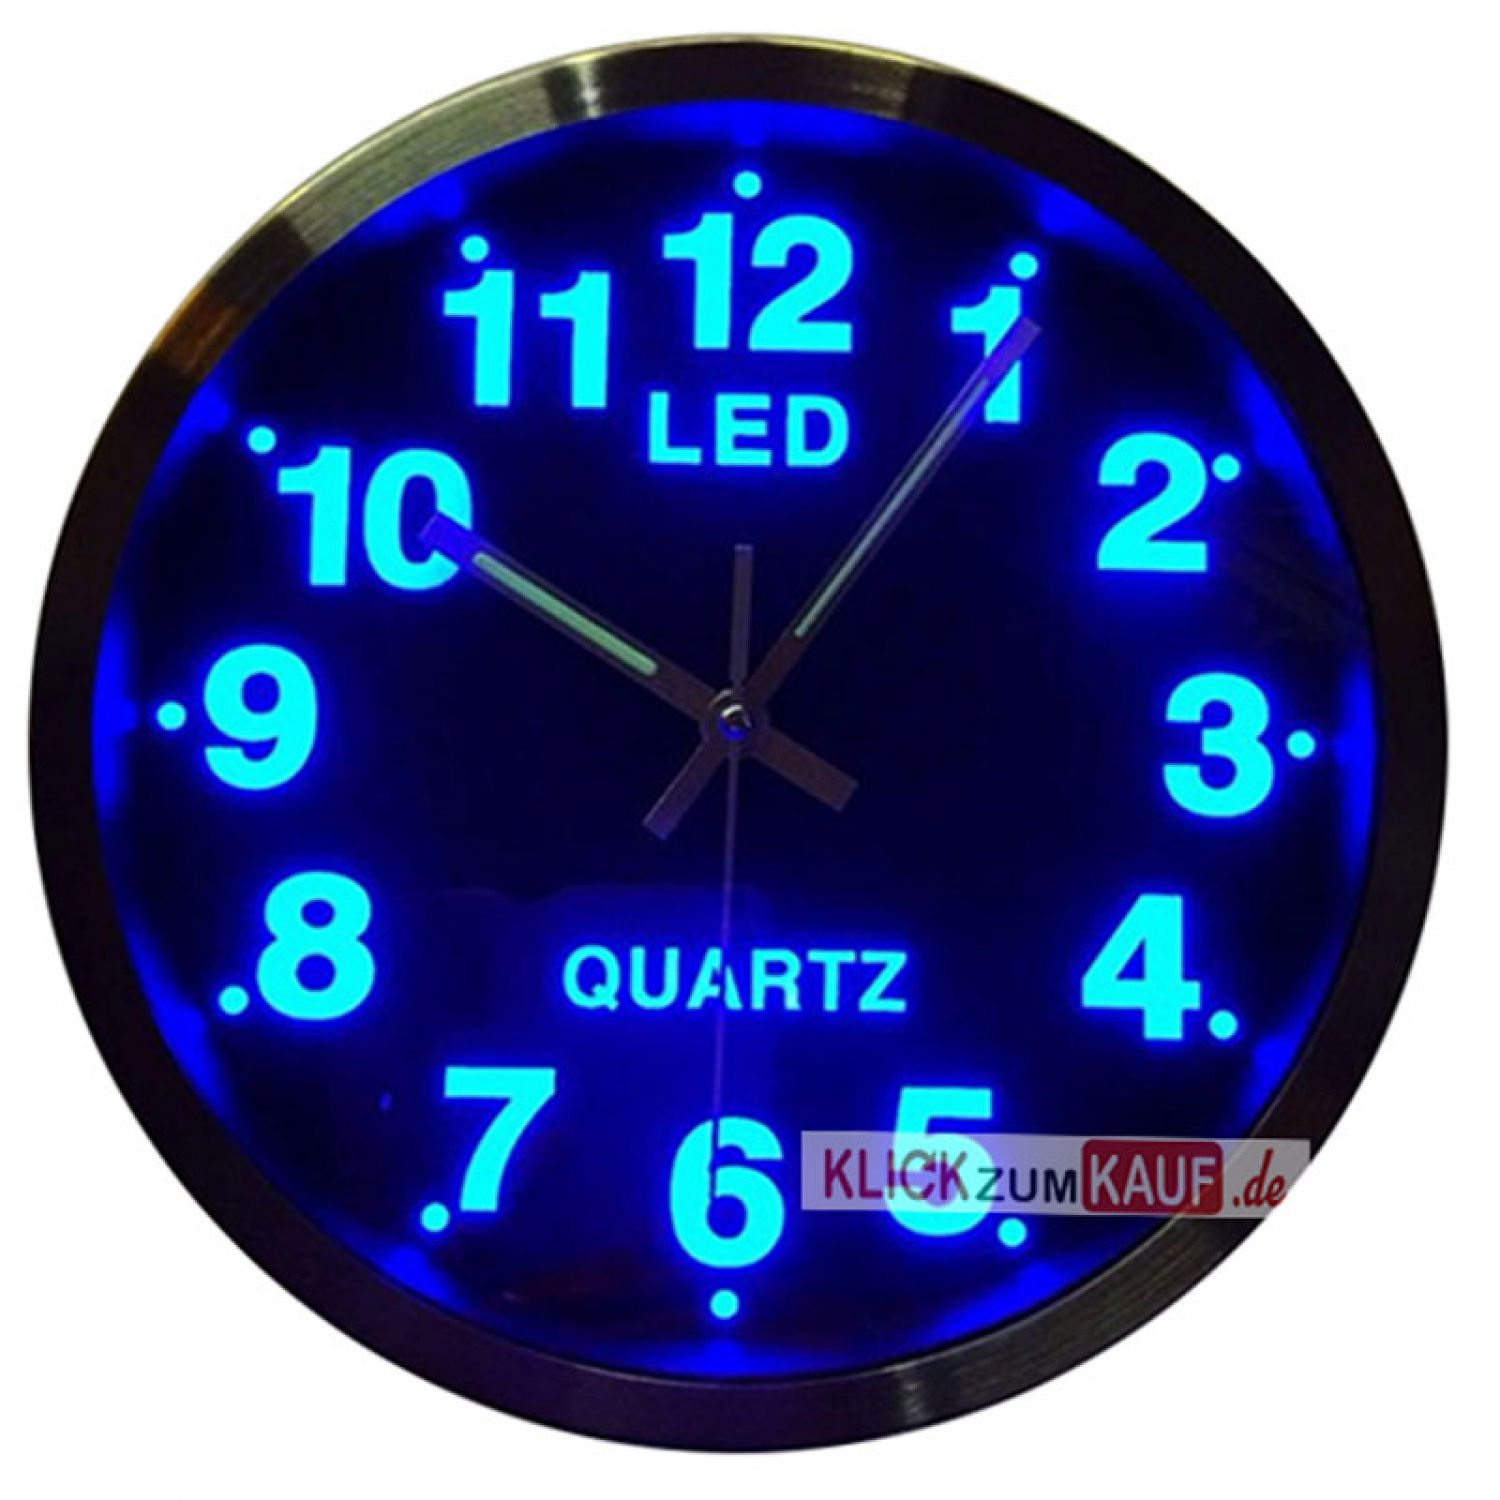 led wanduhr blauer hintergrundbeleuchtung blau designuhr quarzuhr ebay. Black Bedroom Furniture Sets. Home Design Ideas